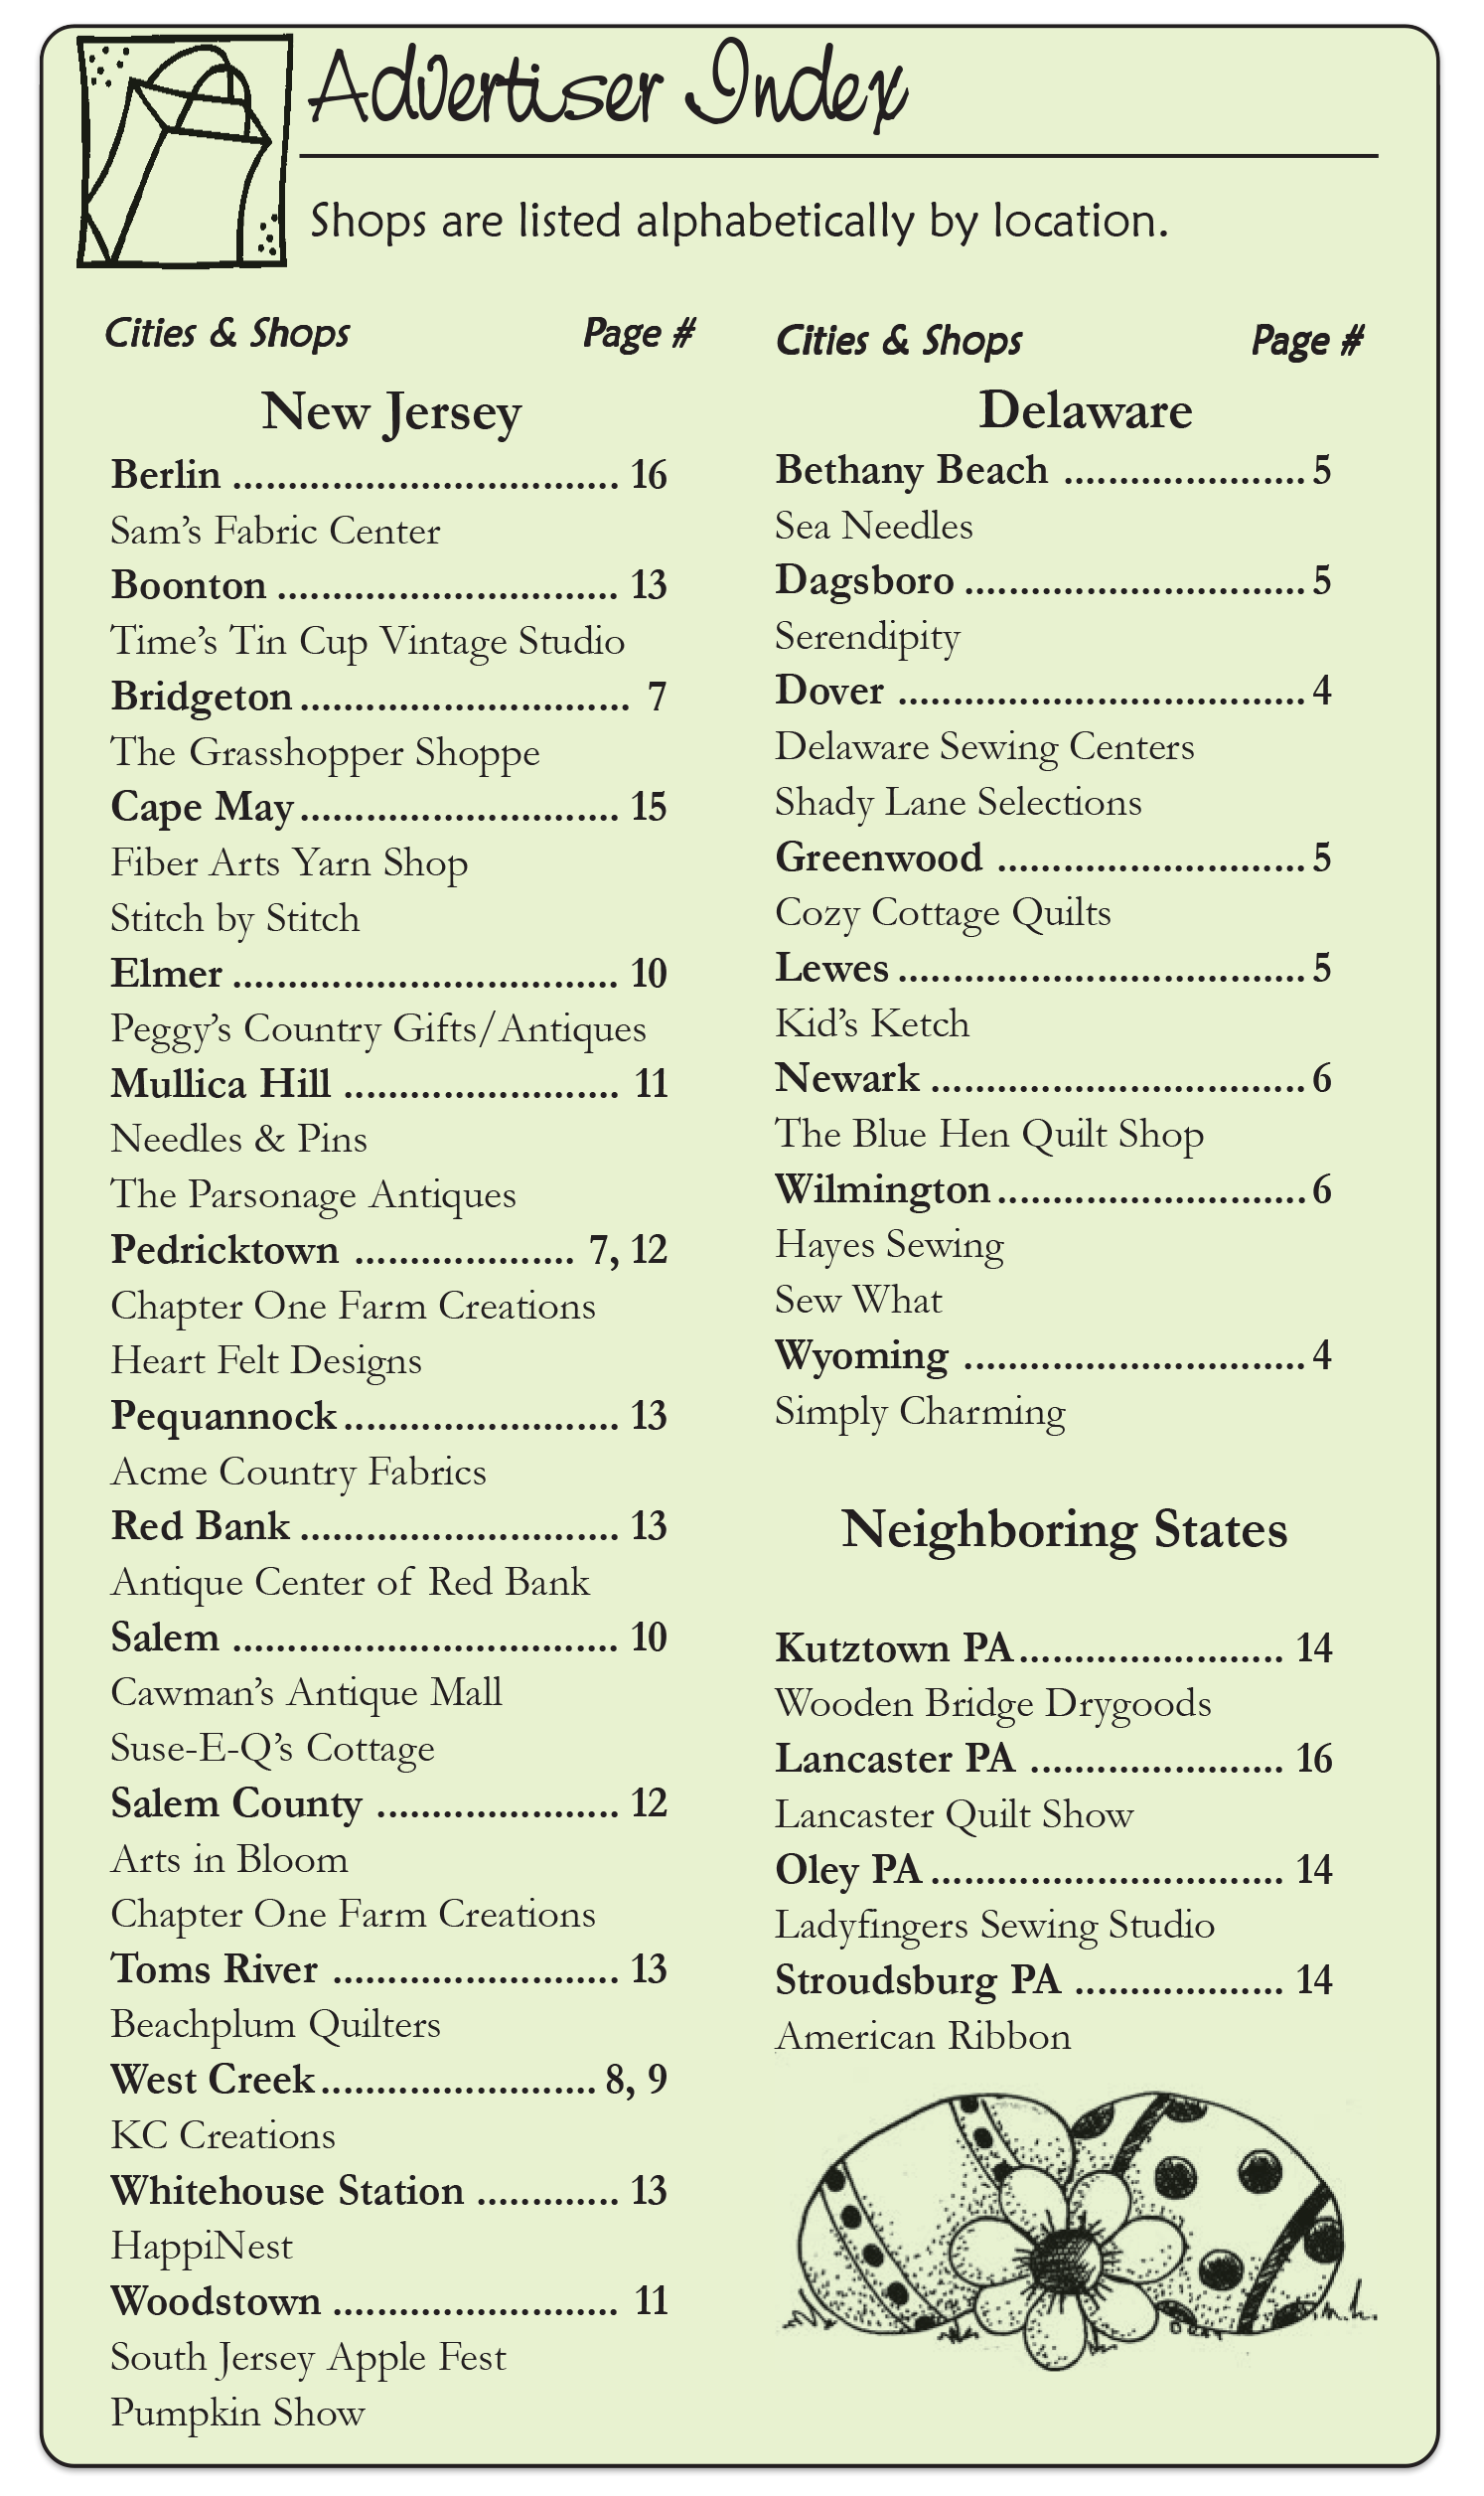 The Country Register of DE/NJ Current advertisers listing.